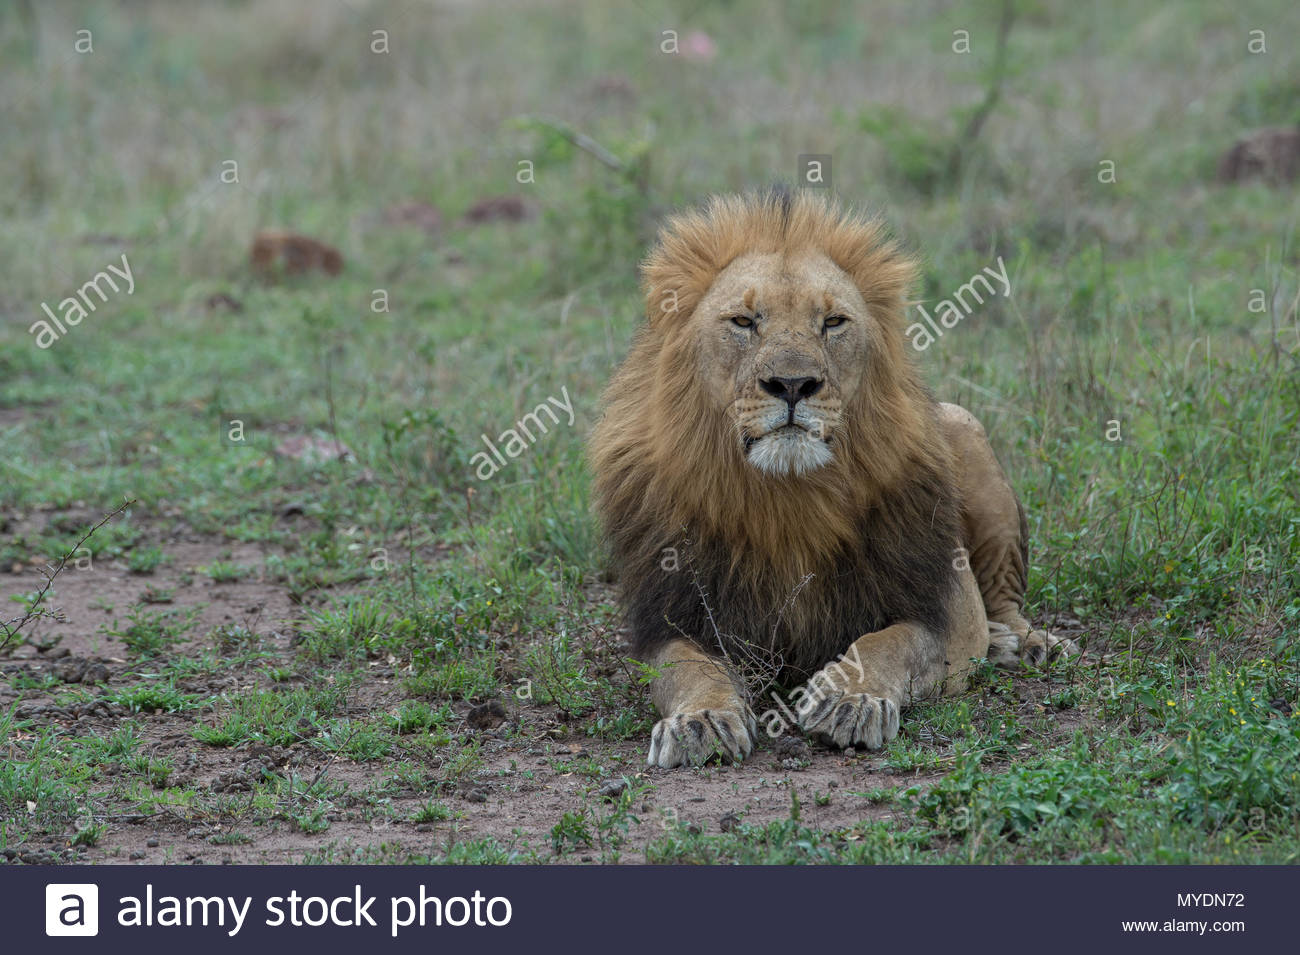 A male lion lying down. - Stock Image